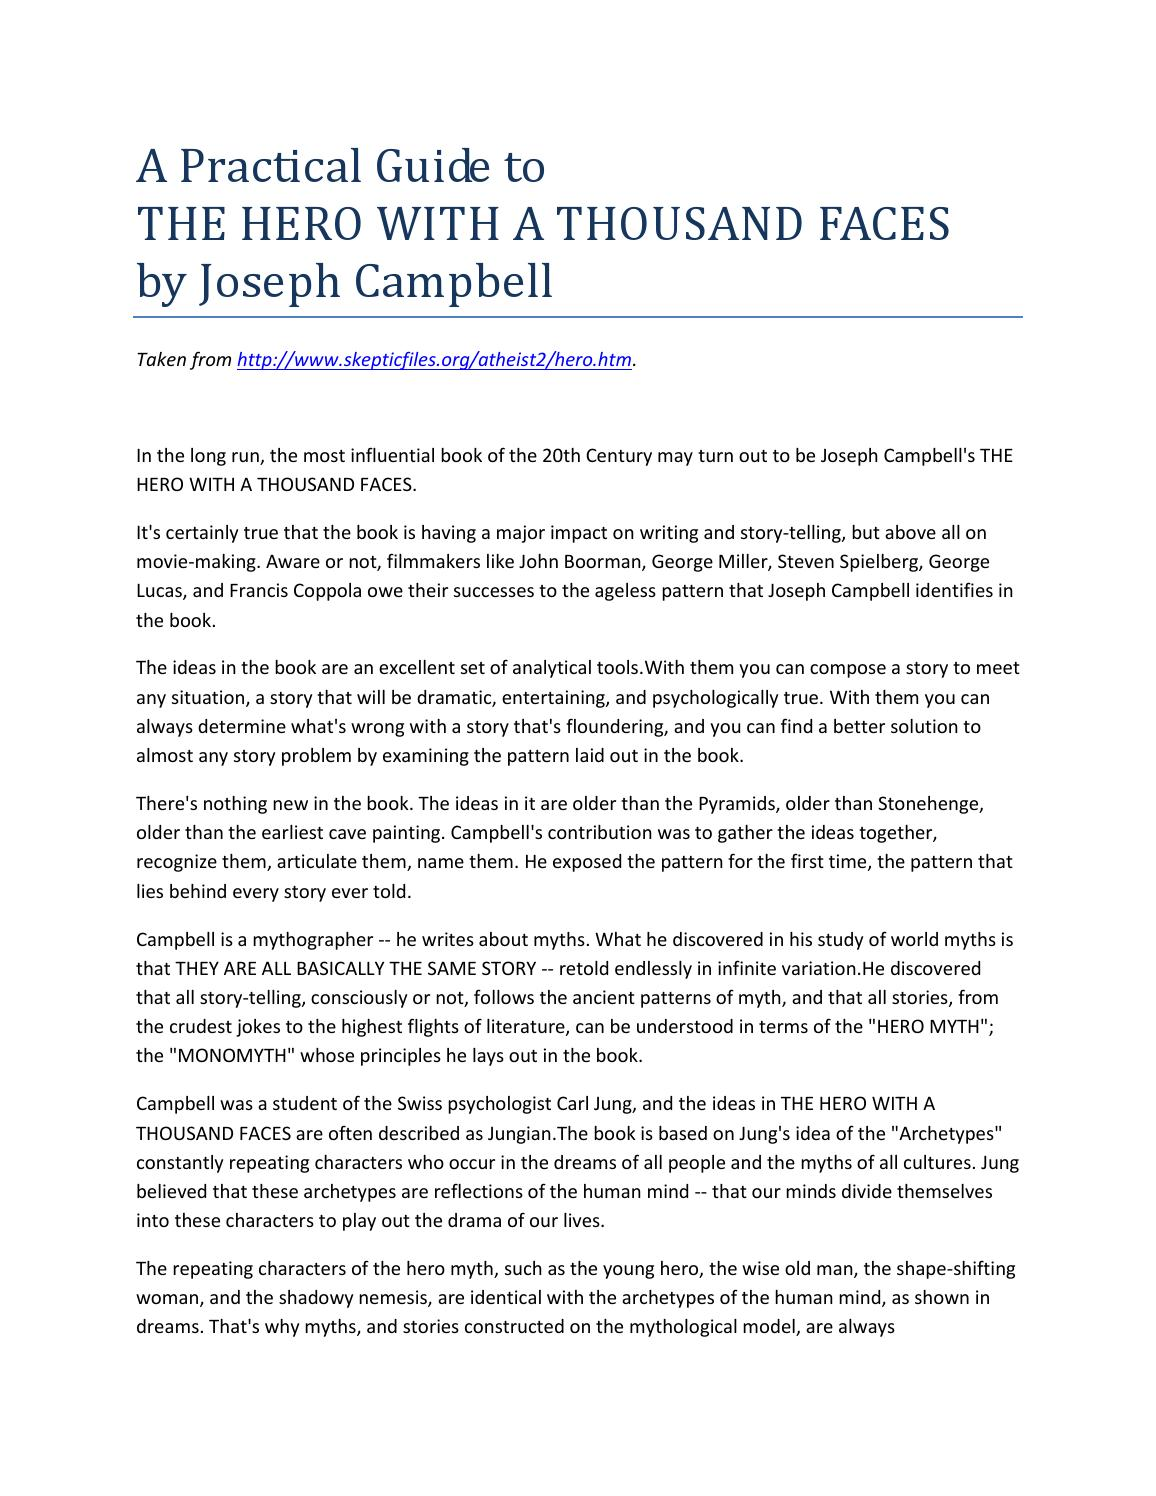 a practical guide to the hero with a thousand faces by kgnaho - issuu